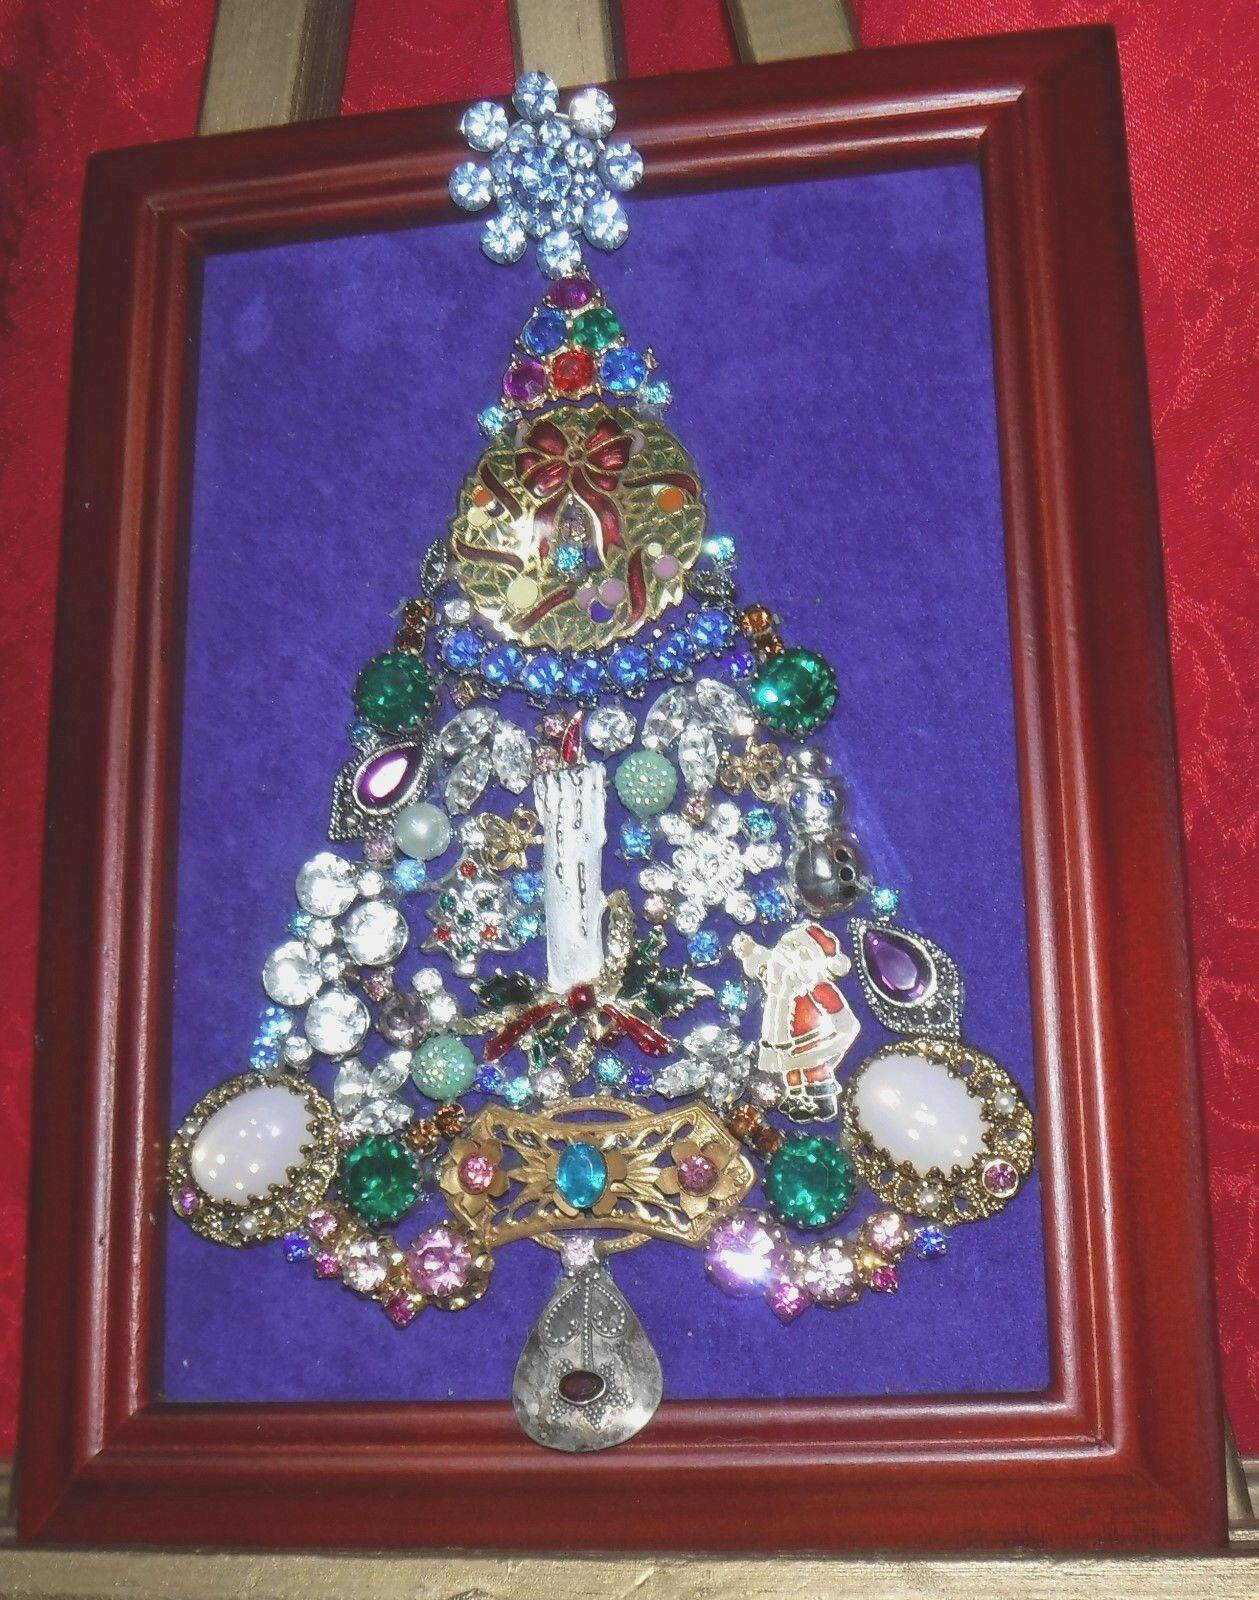 VINTAGE JEWELRY CHRISTMAS Tree, framed and signed - $46.99 | PicClick